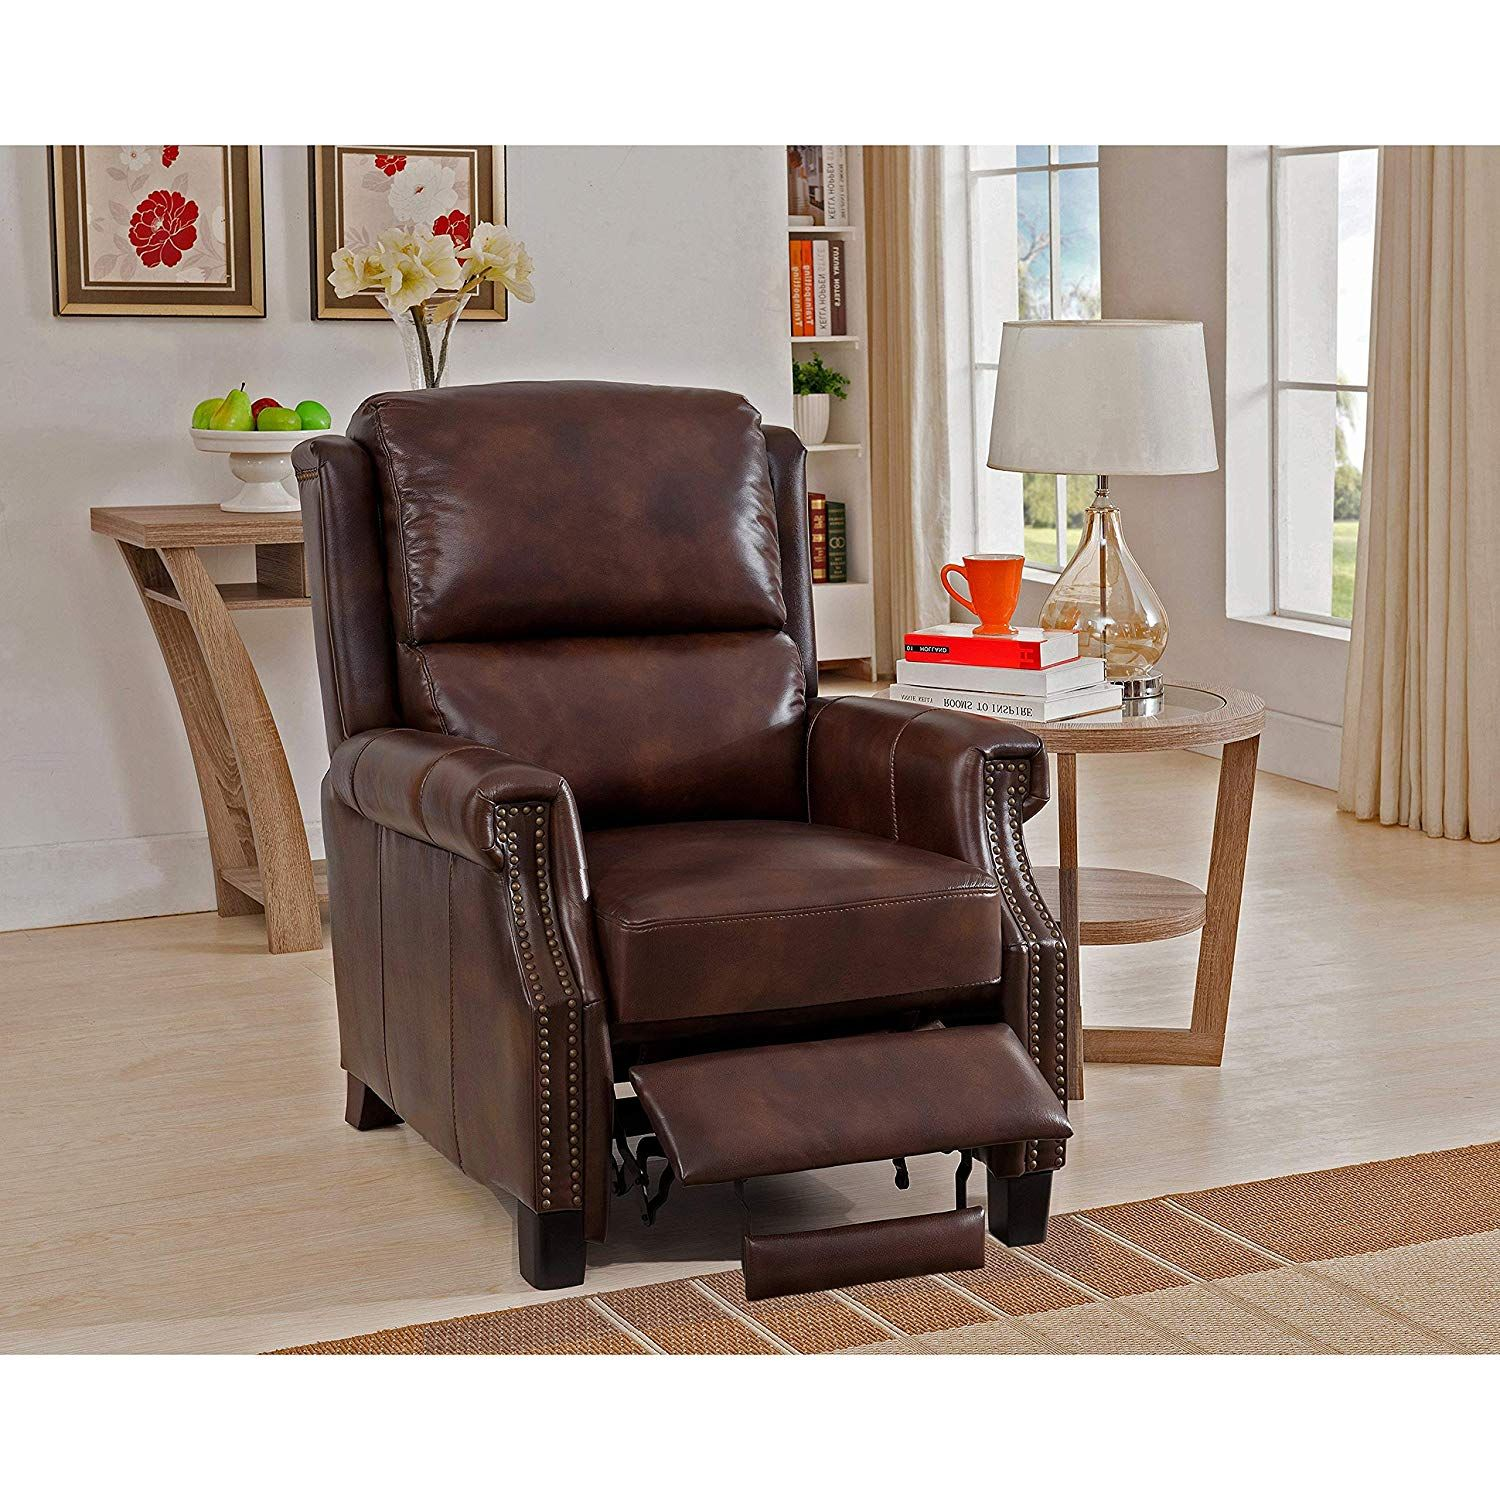 Sofaweb Com Rivington Brown Premium Top Grain Leather Recliner Chair Cheap Dining Room Chairs Leather Dining Room Chairs Modern Recliner Chairs #reclining #chair #living #room